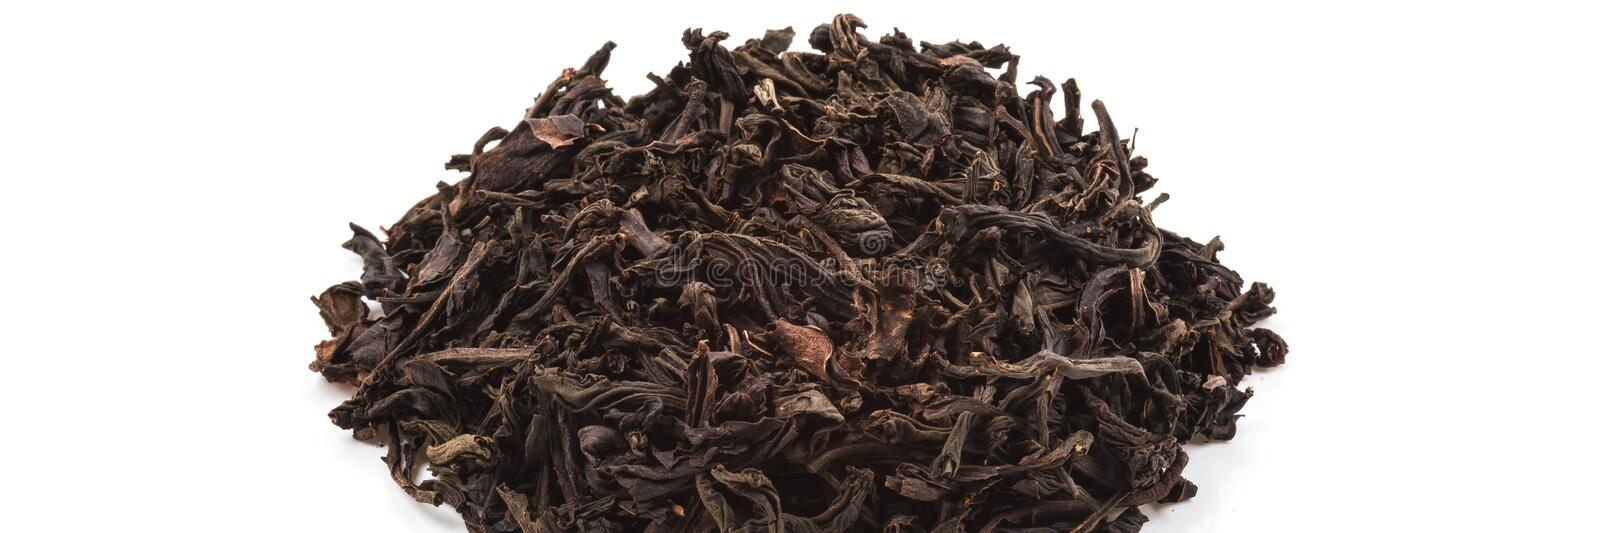 Dried tea poured a slide on a white background. Is isolated royalty free stock images